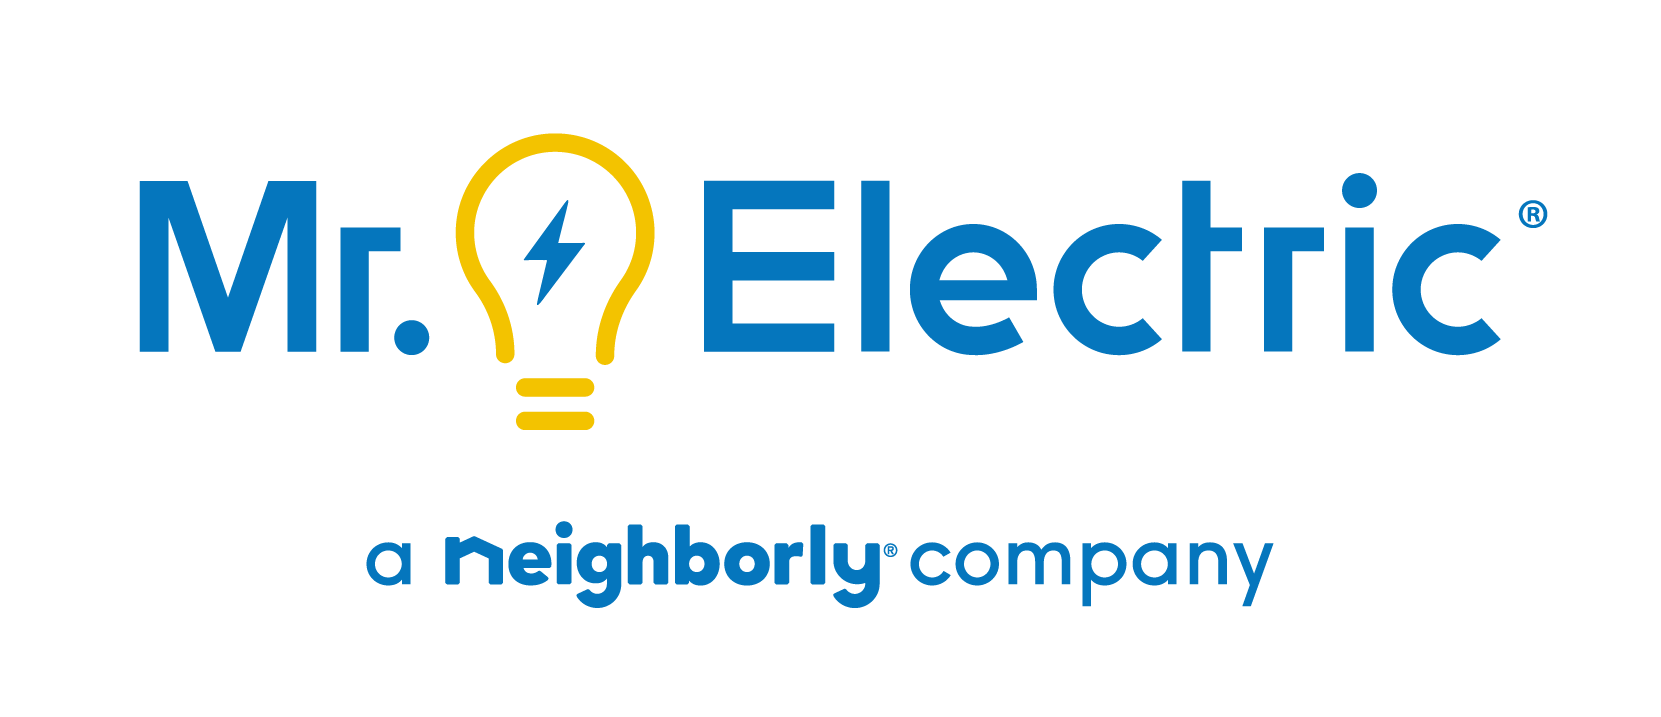 Mr. Electric of Gainesville, FL